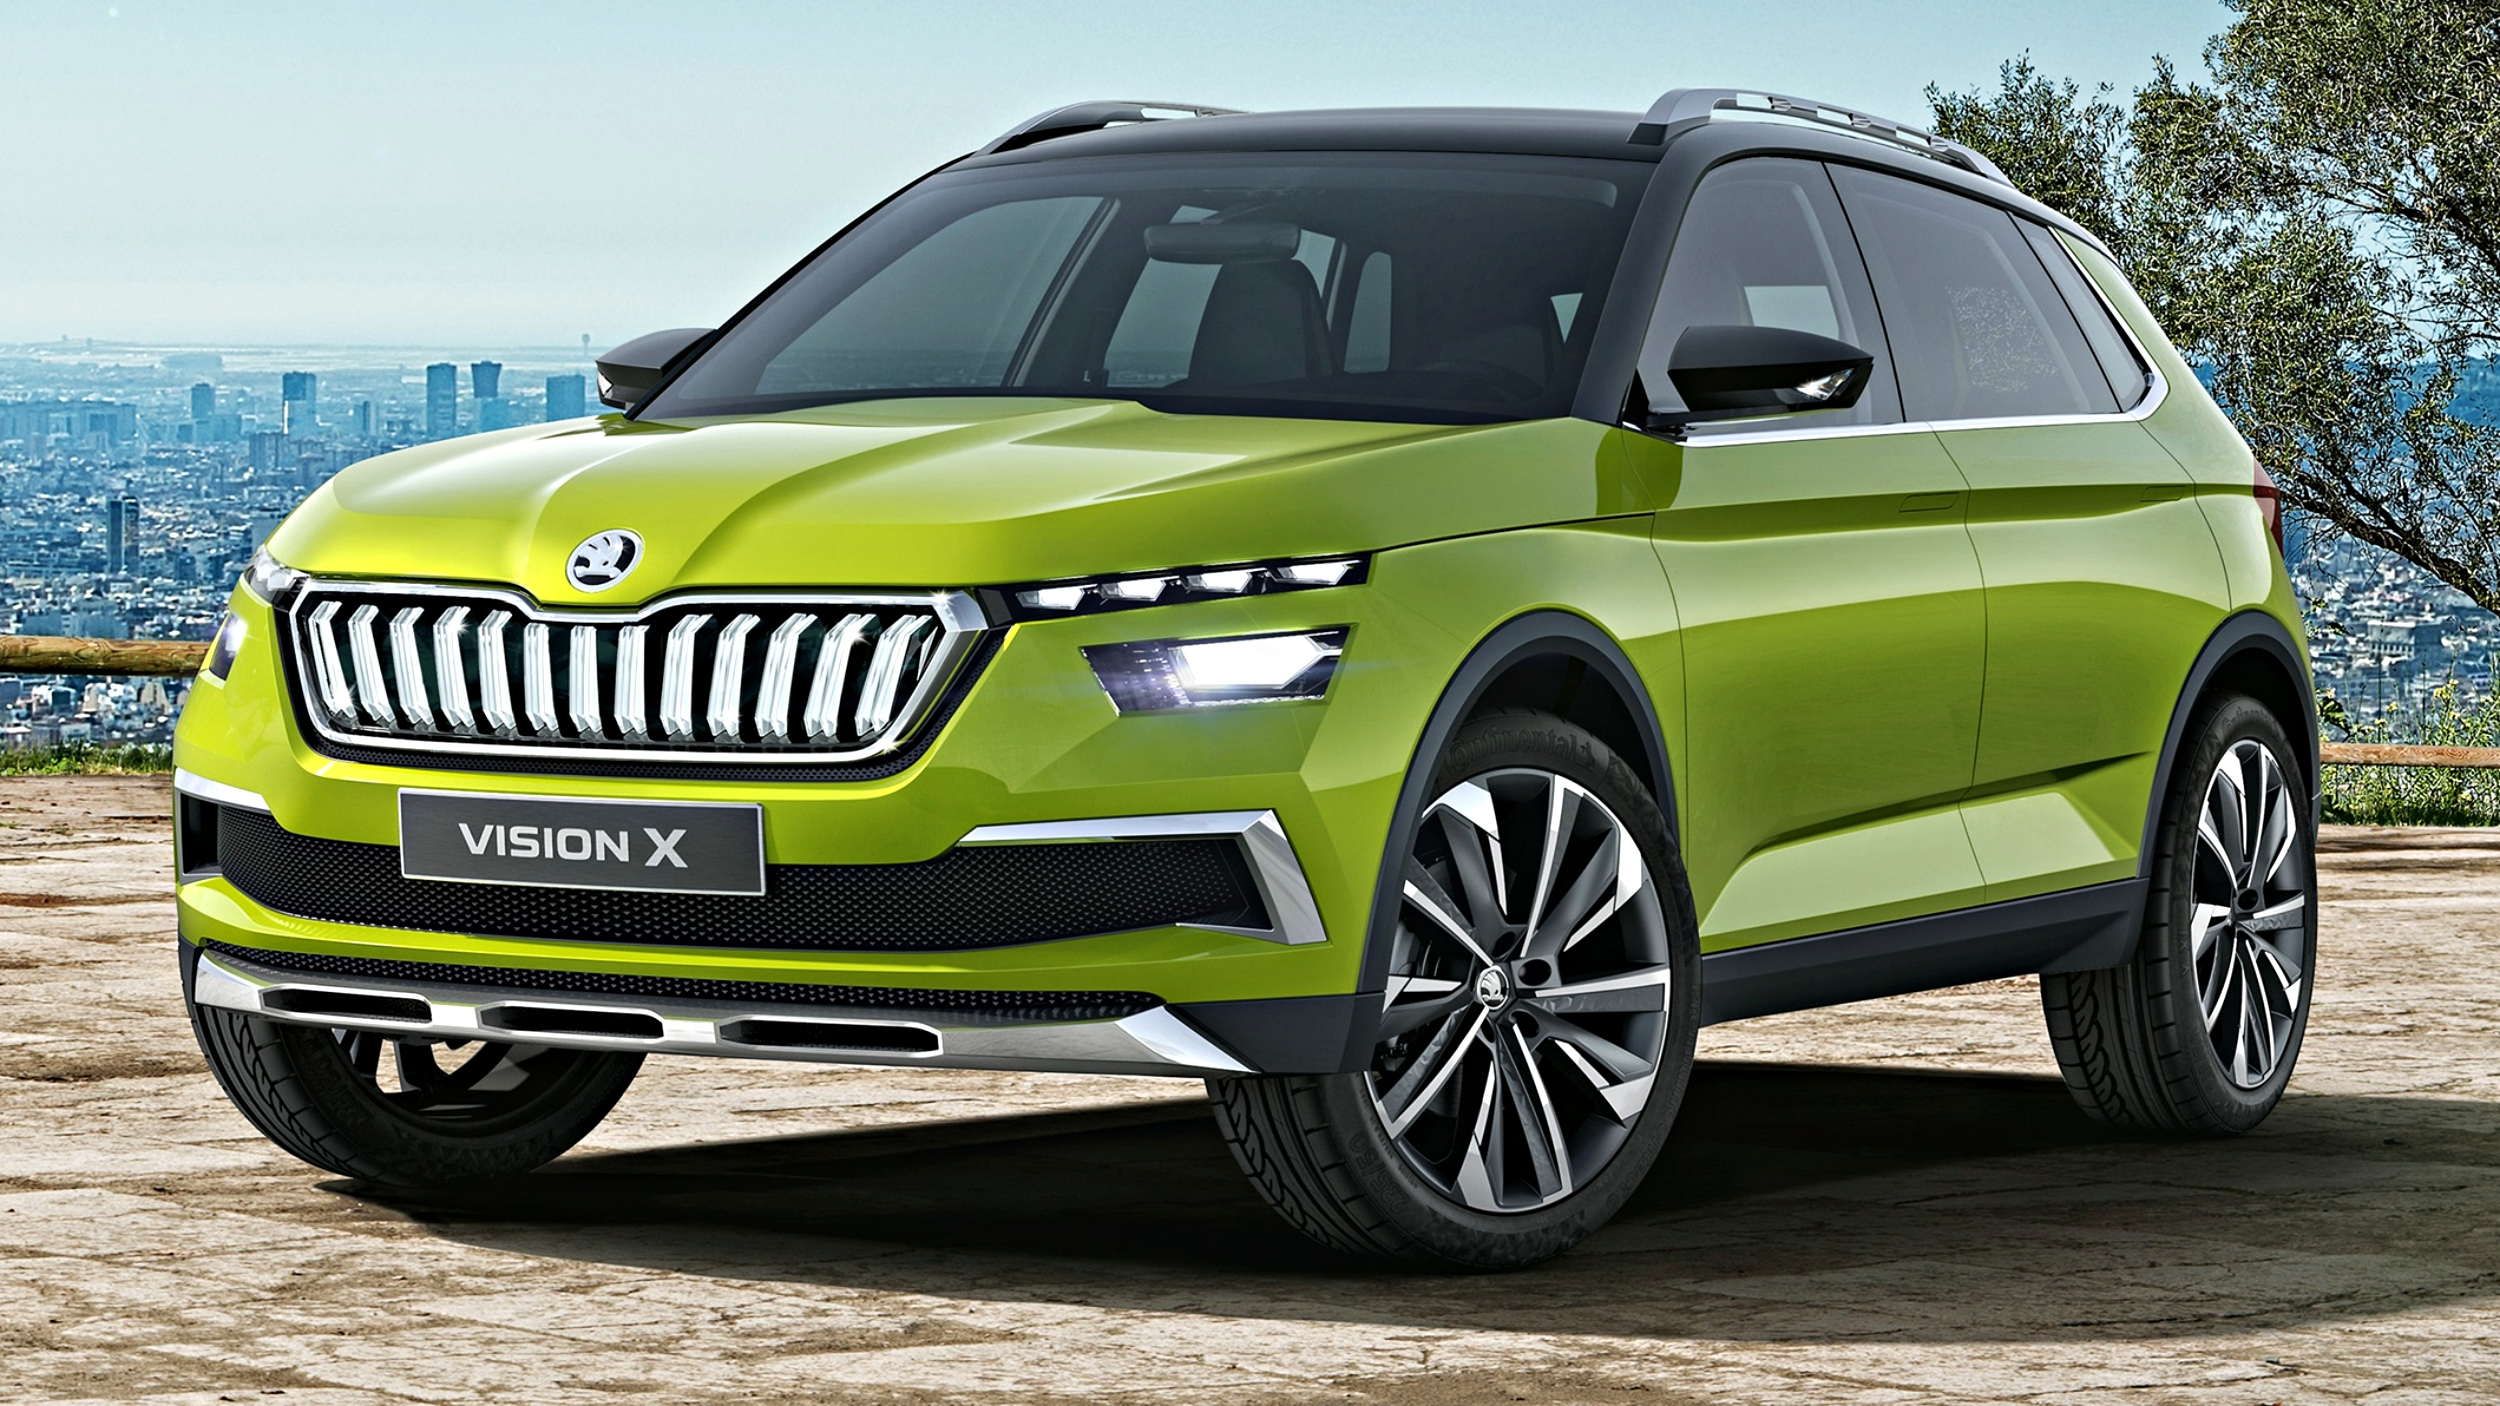 News - Skoda Vision X Concept Shows Off Impending Compact SUV